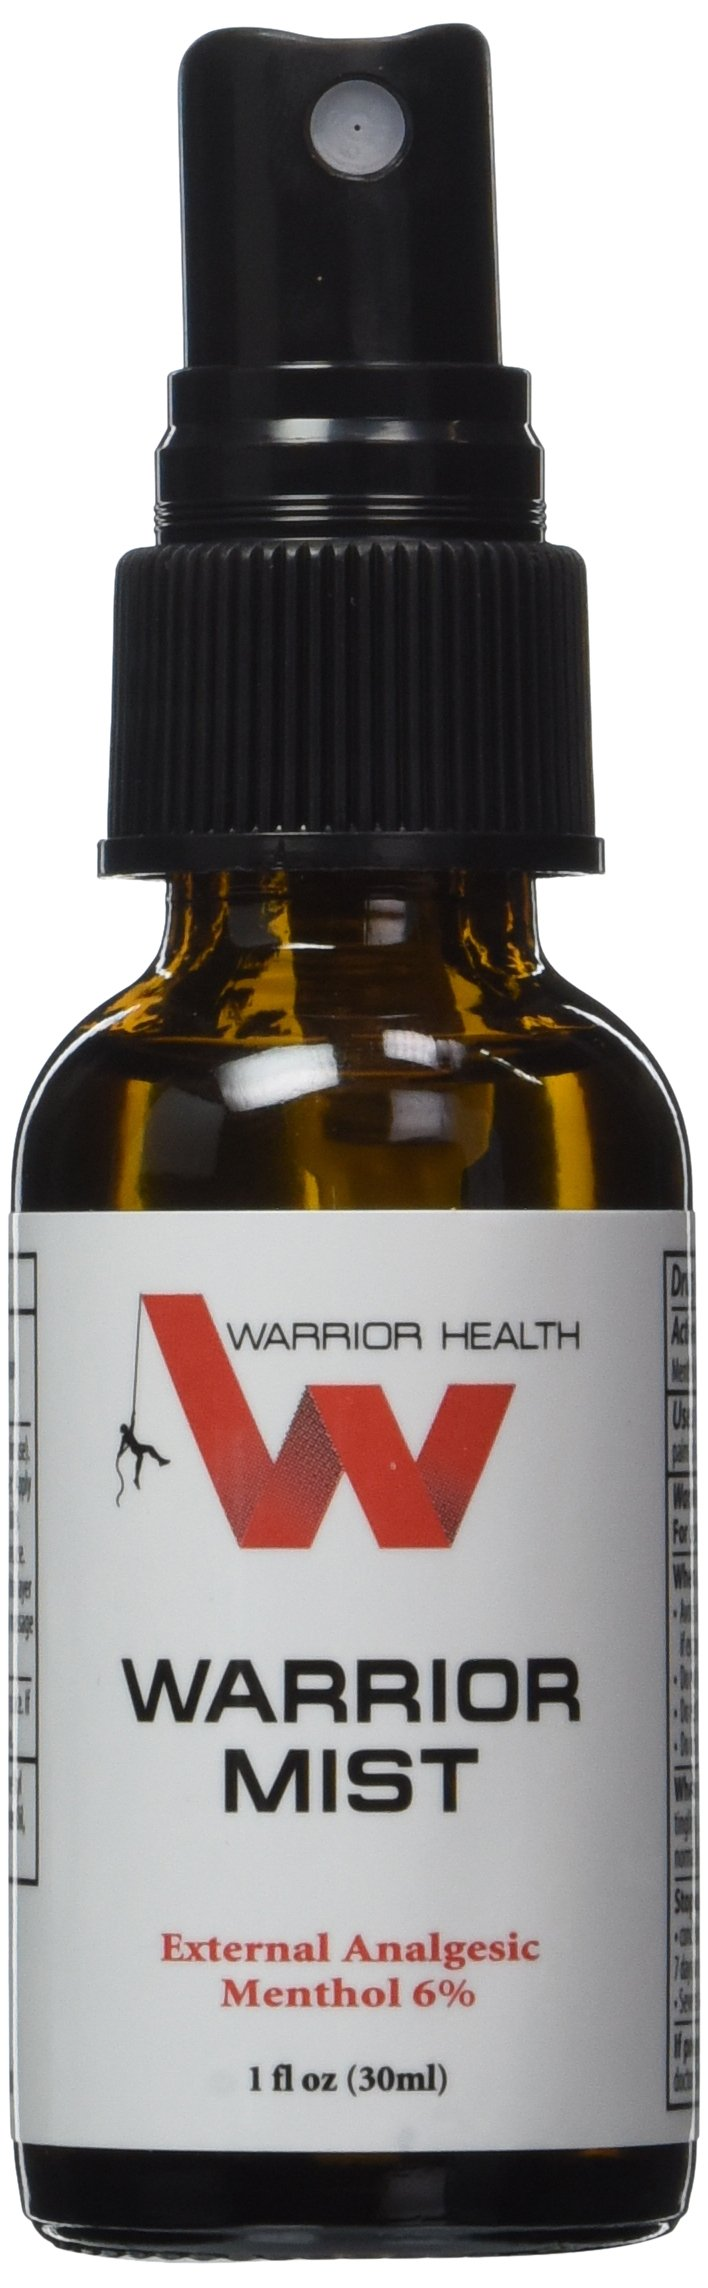 Warrior Mist Natural Topical Pain Reliever, 1 fl. oz.